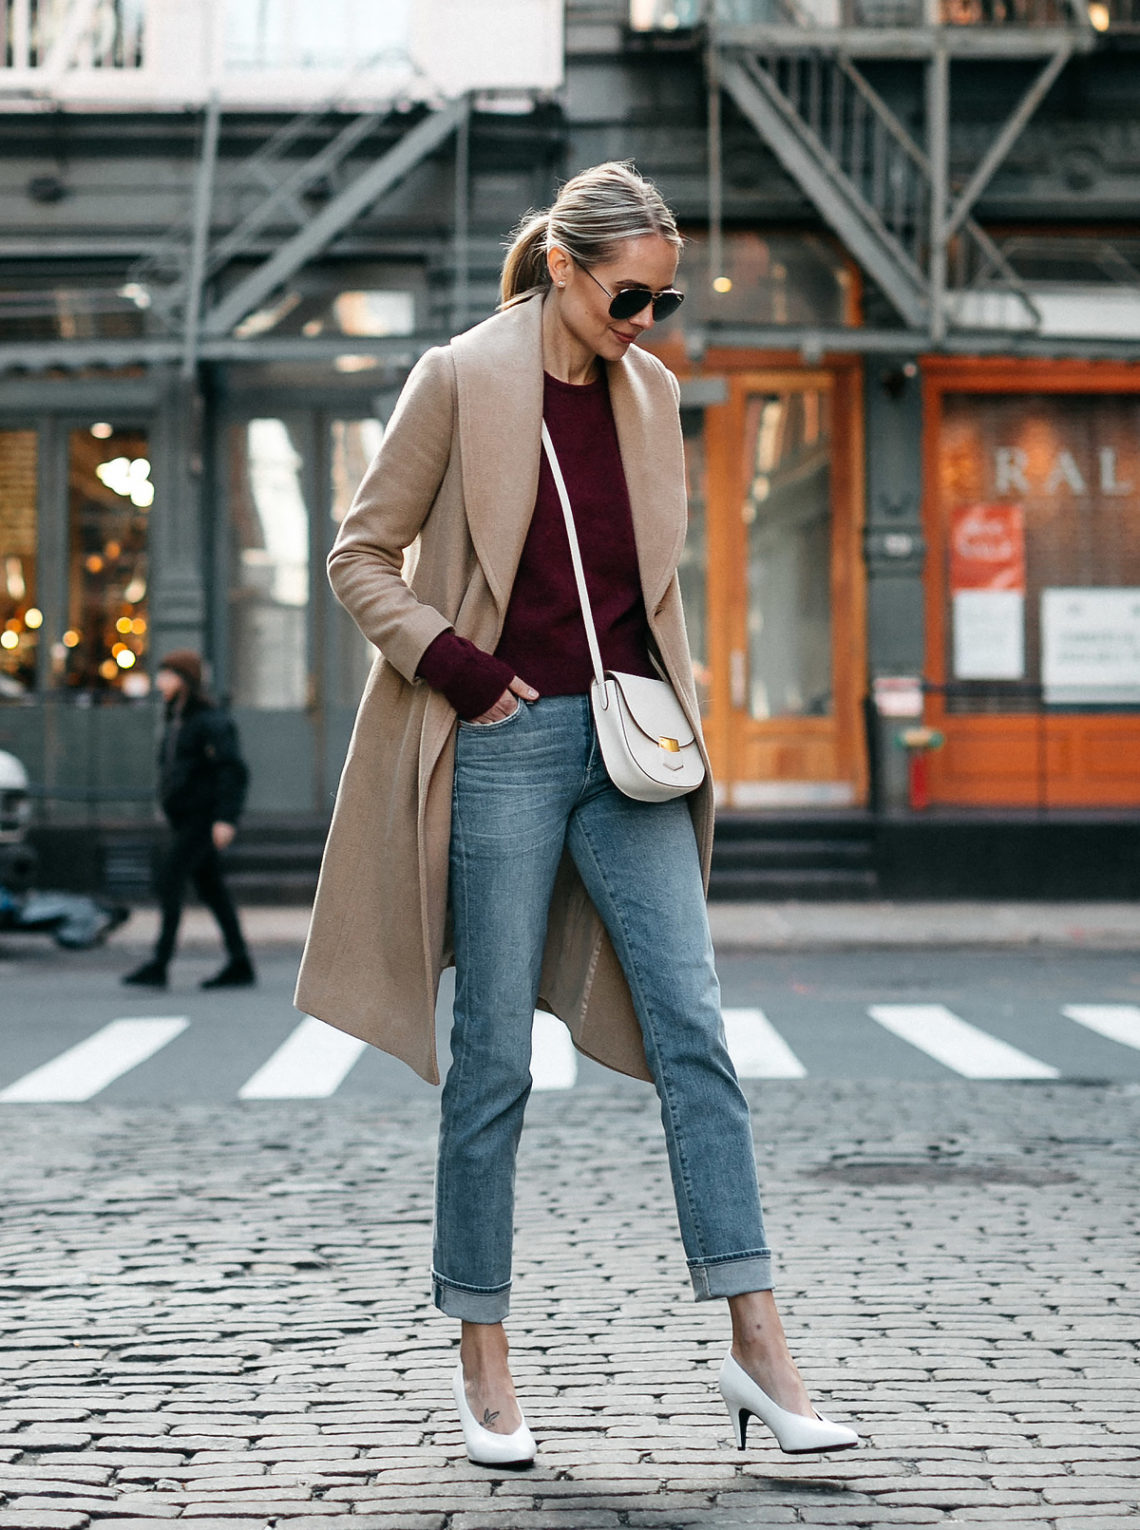 Blonde Woman Wearing Club Monaco Camel Coat Burgundy Sweater Denim Jeans White Pumps Celine White Trotteur Handbag Fashion Jackson Dallas Blogger Fashion Blogger Street Style New York Fashion Week